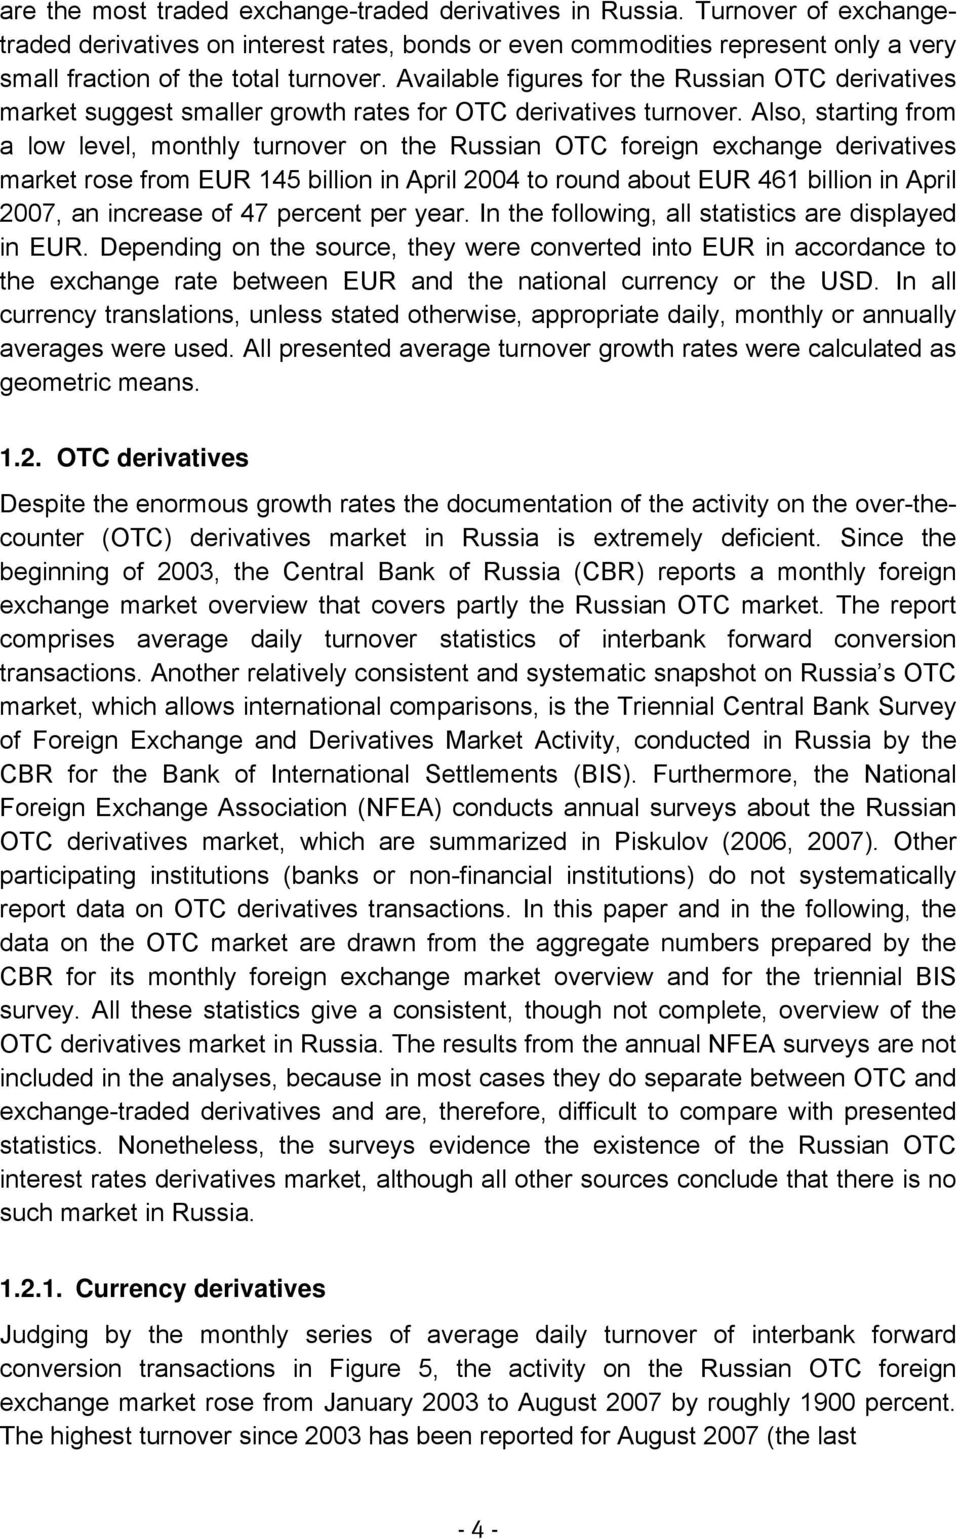 Available figures for the Russian OTC derivatives market suggest smaller growth rates for OTC derivatives turnover.